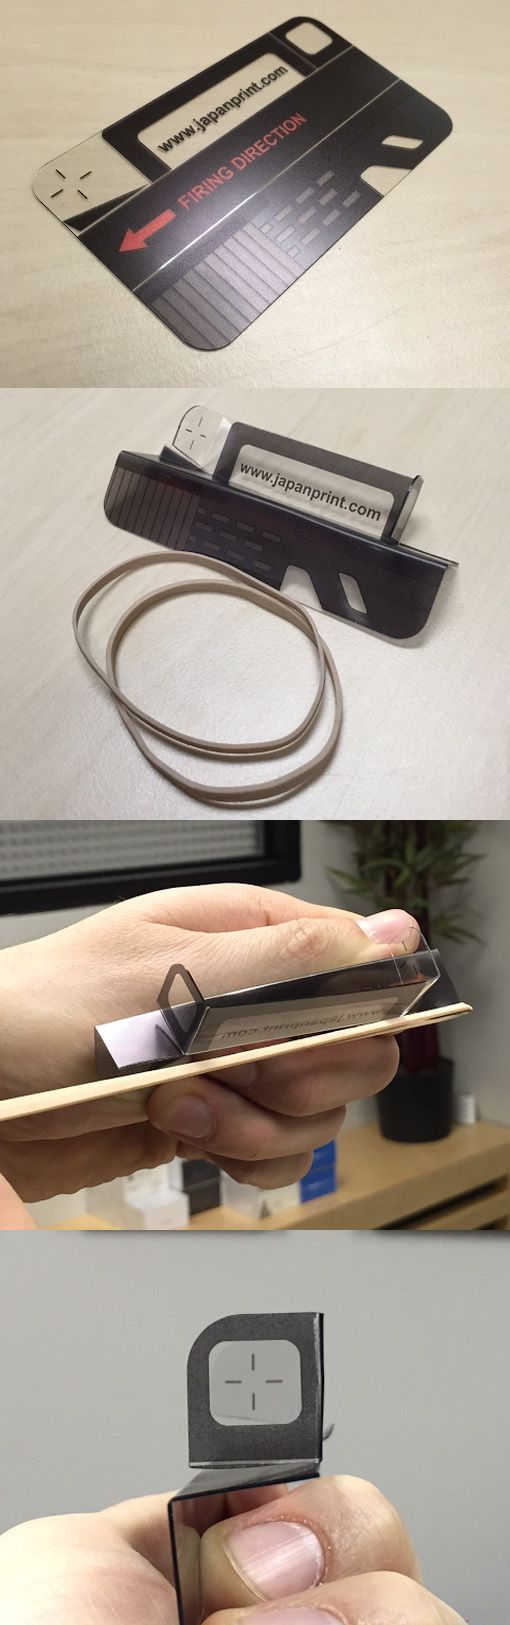 Clever 3D Plastic Folding Business Card Becomes A Rubber Band Shooter